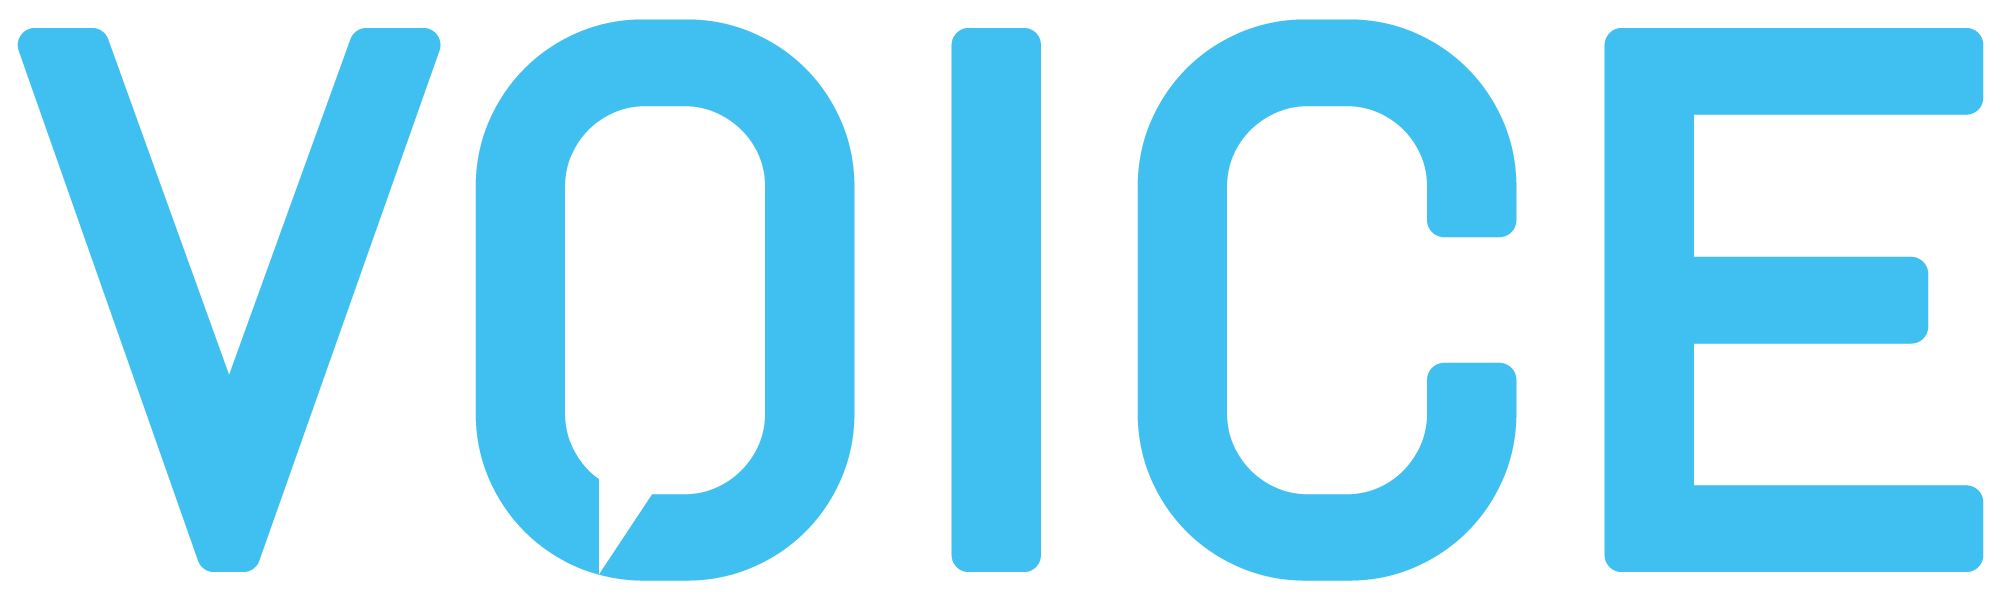 voice_logo_blue_transparent.png